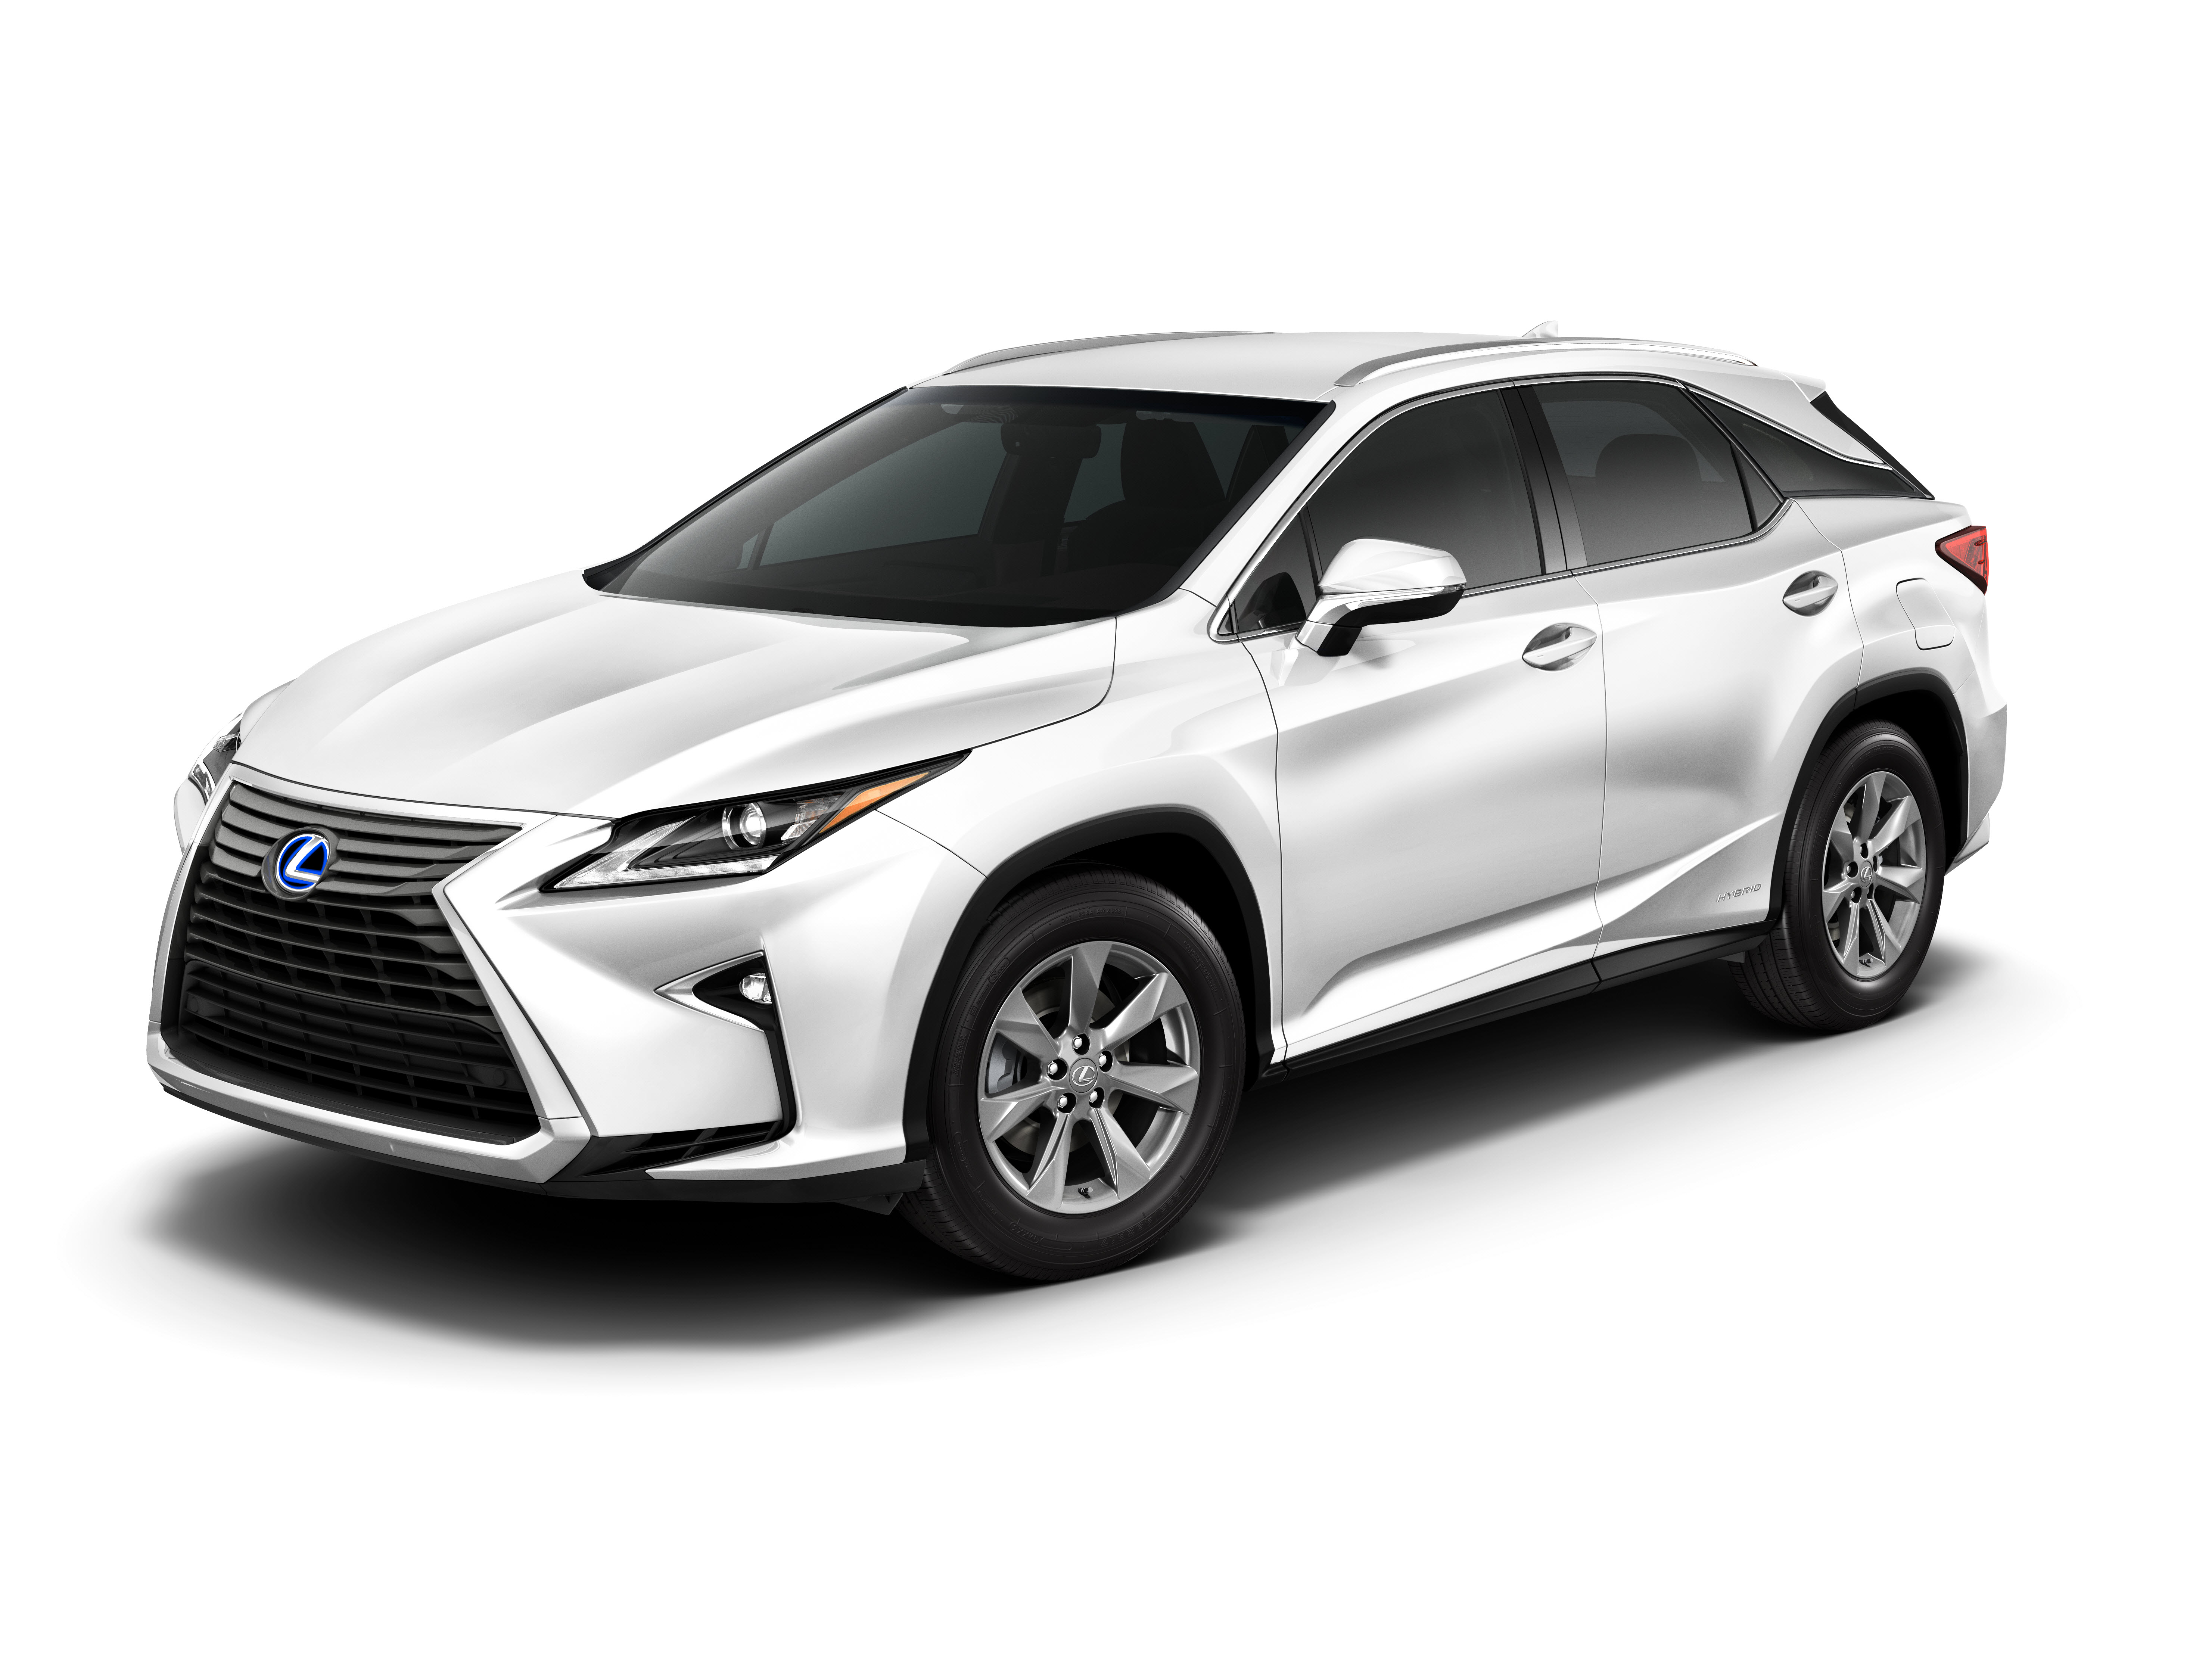 stu and s to friday was kels the featuring suv matt radio taken fm a f rx of edition arguello recently lexus gray pirate for sport george reviews